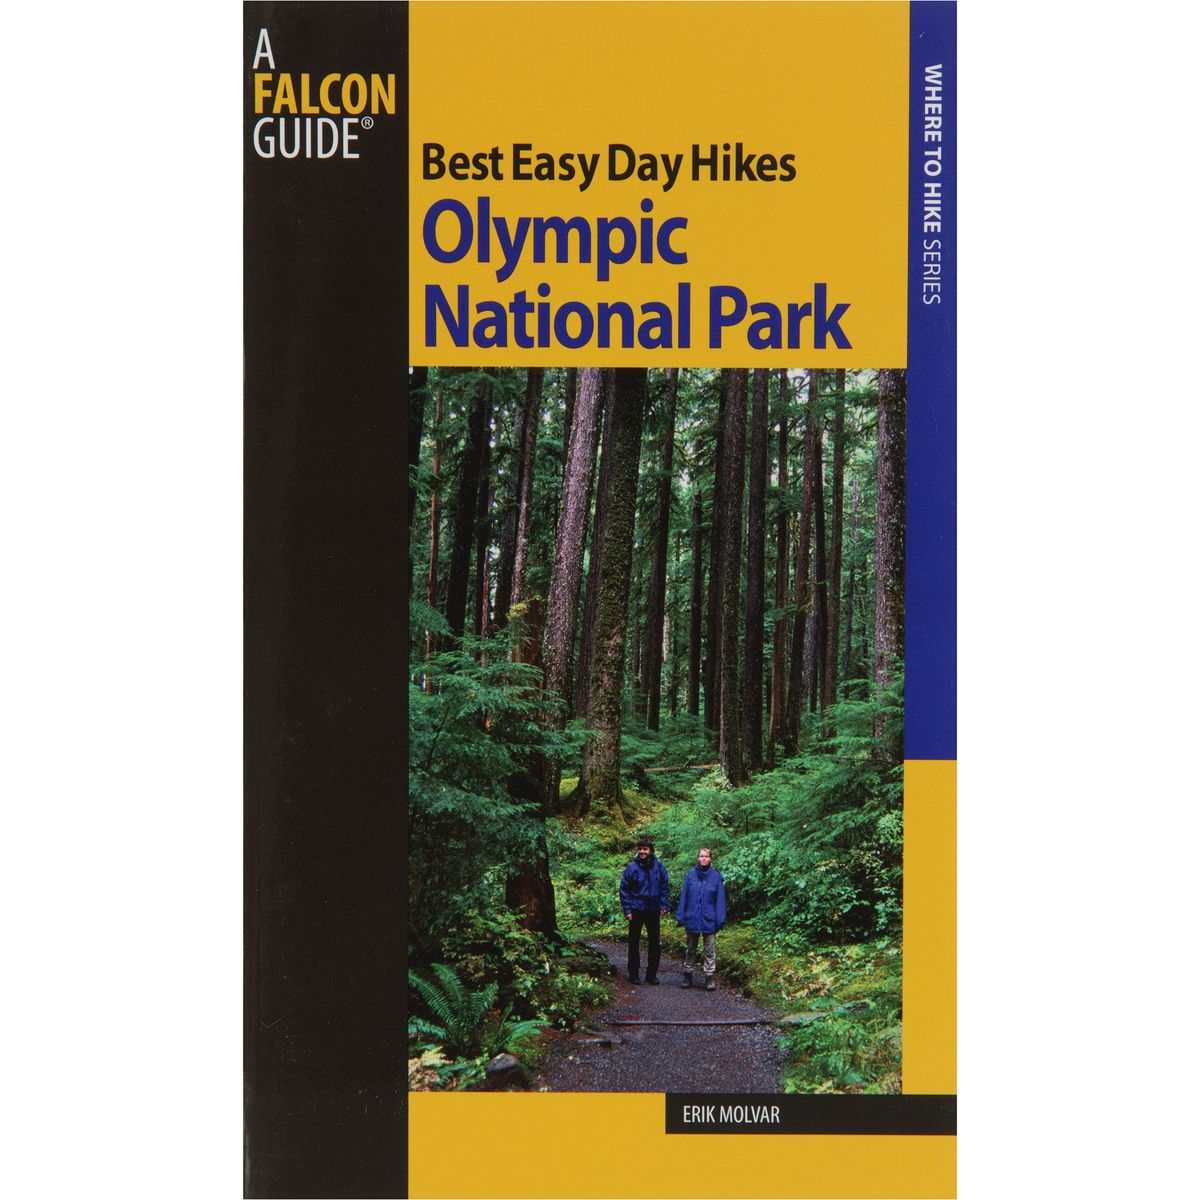 Falcon Guides Best Easy Day Hikes - Olympic National Park